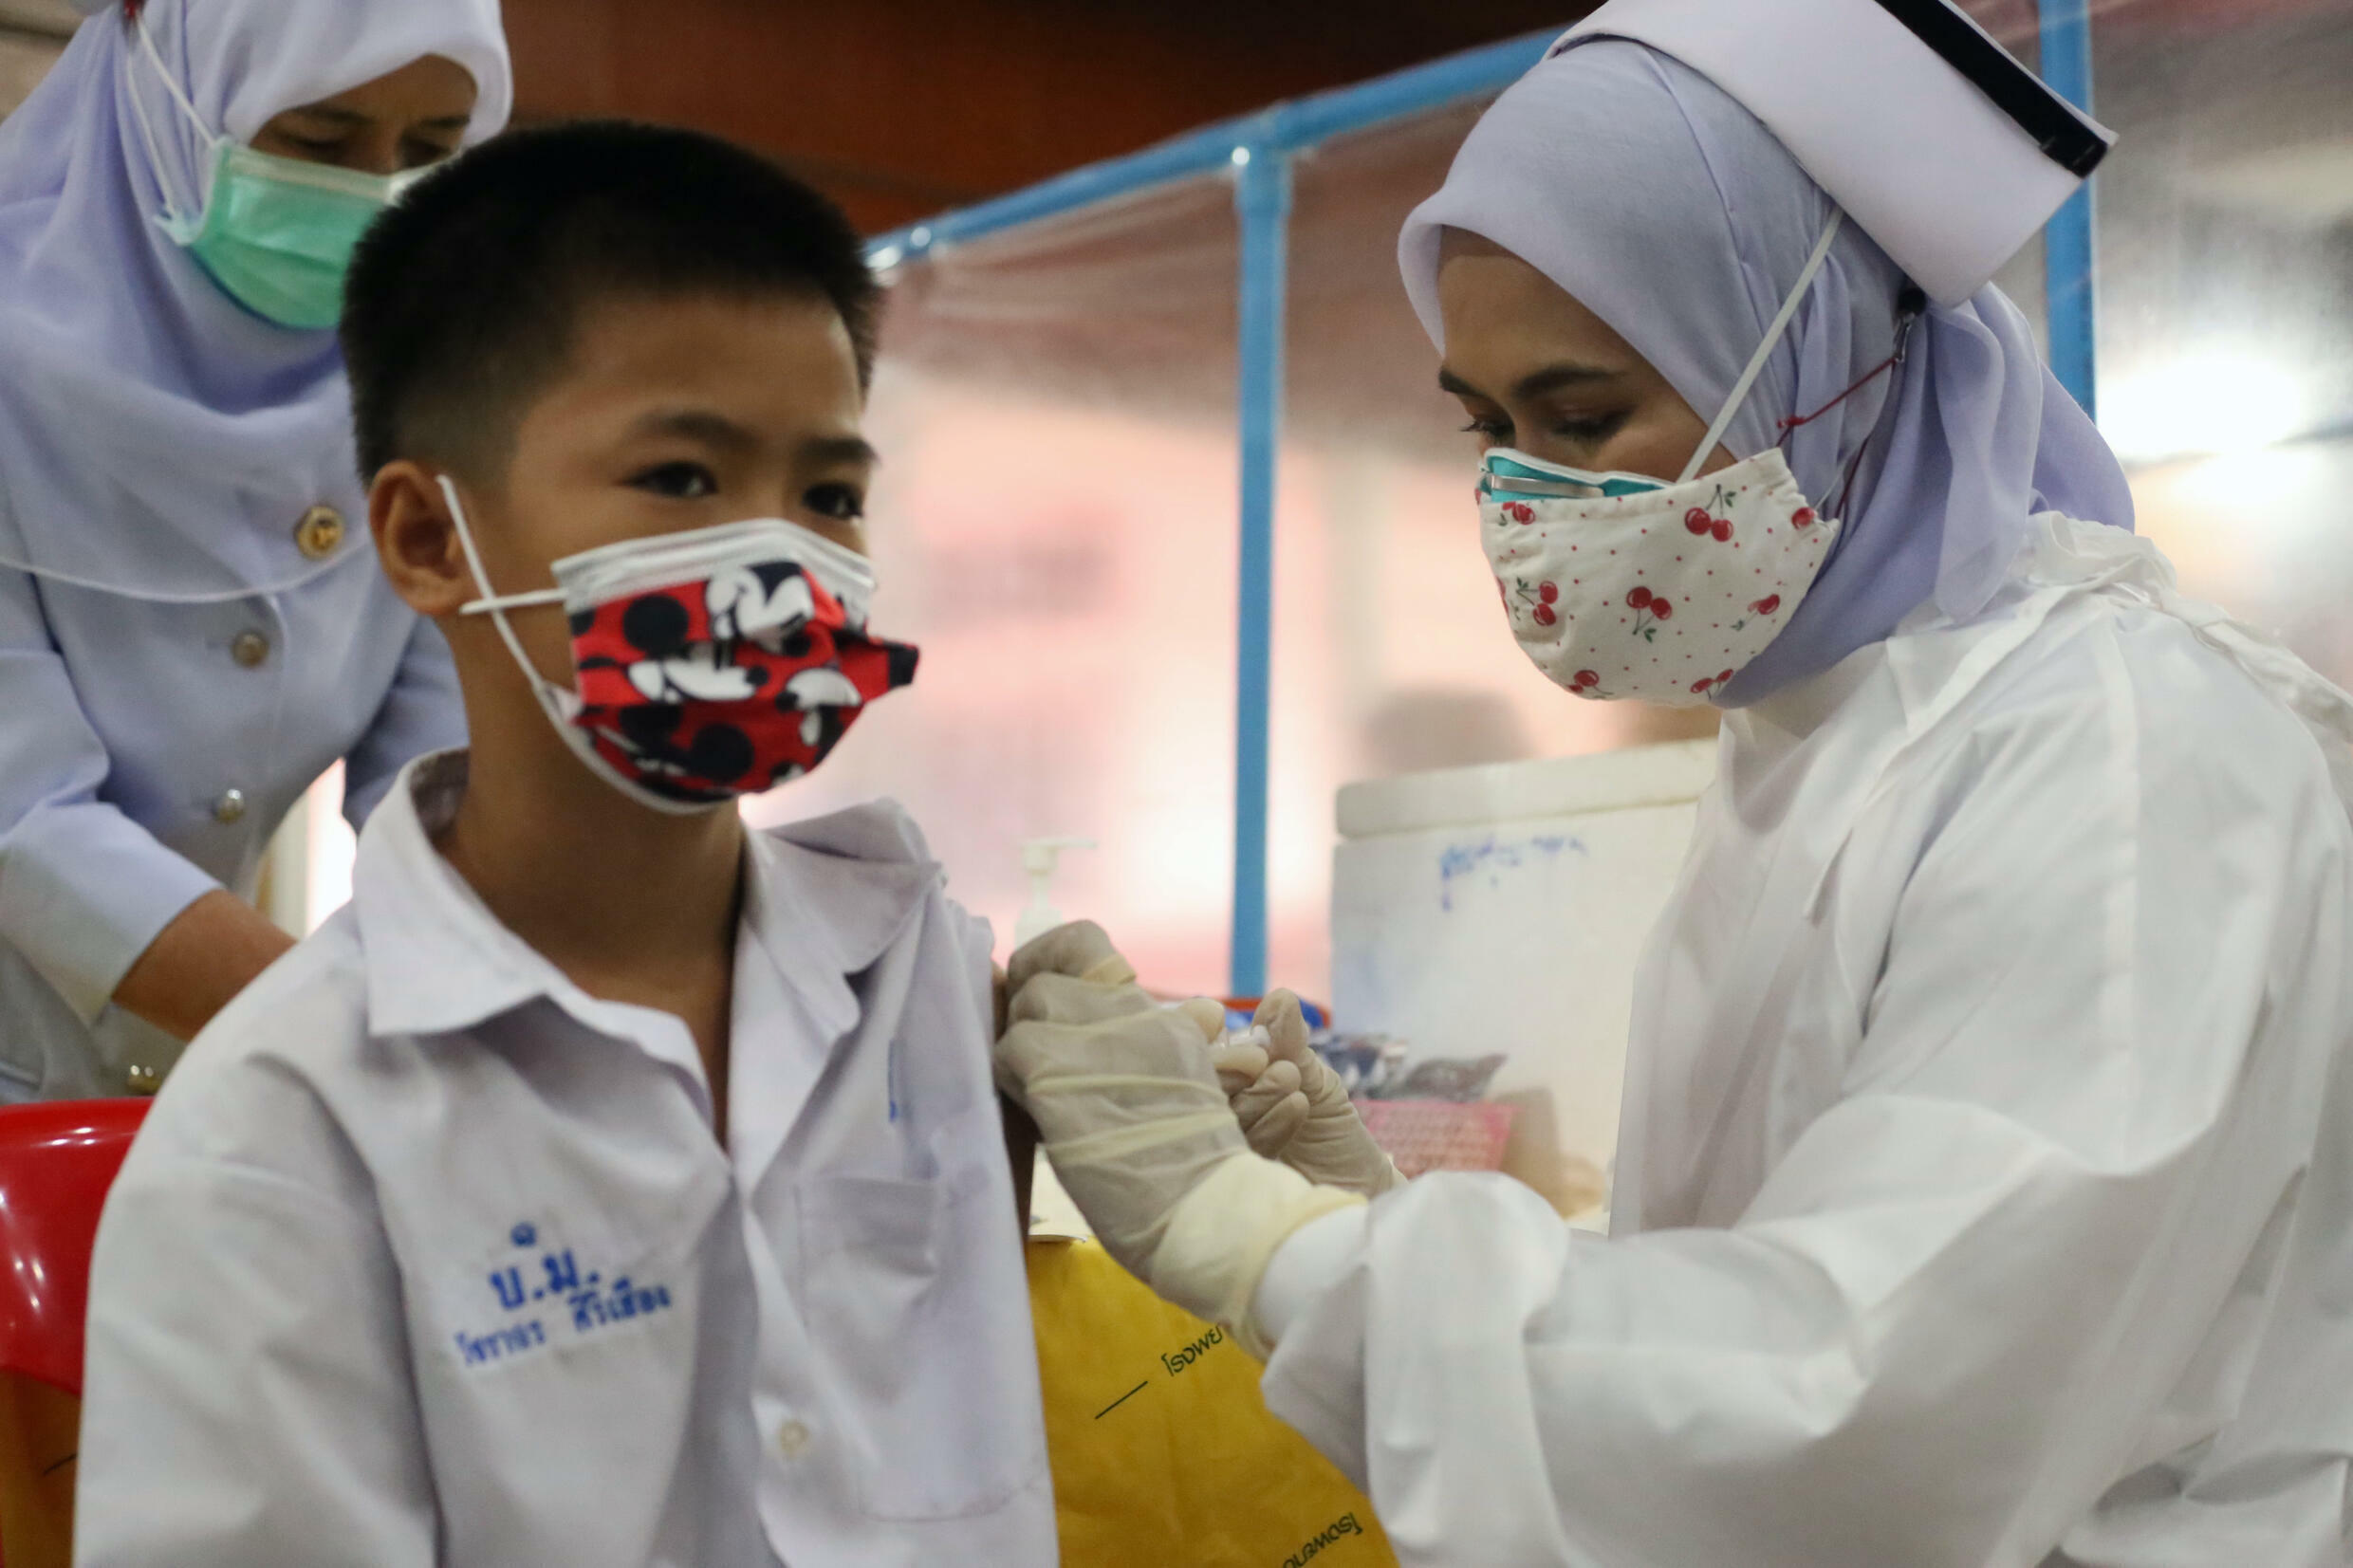 A medical worker administers a dose of the Pfizer vaccine against Covid-19 coronavirus to a school student at a vaccination centre in southern Thailand's Pattani province on October 7, 2021